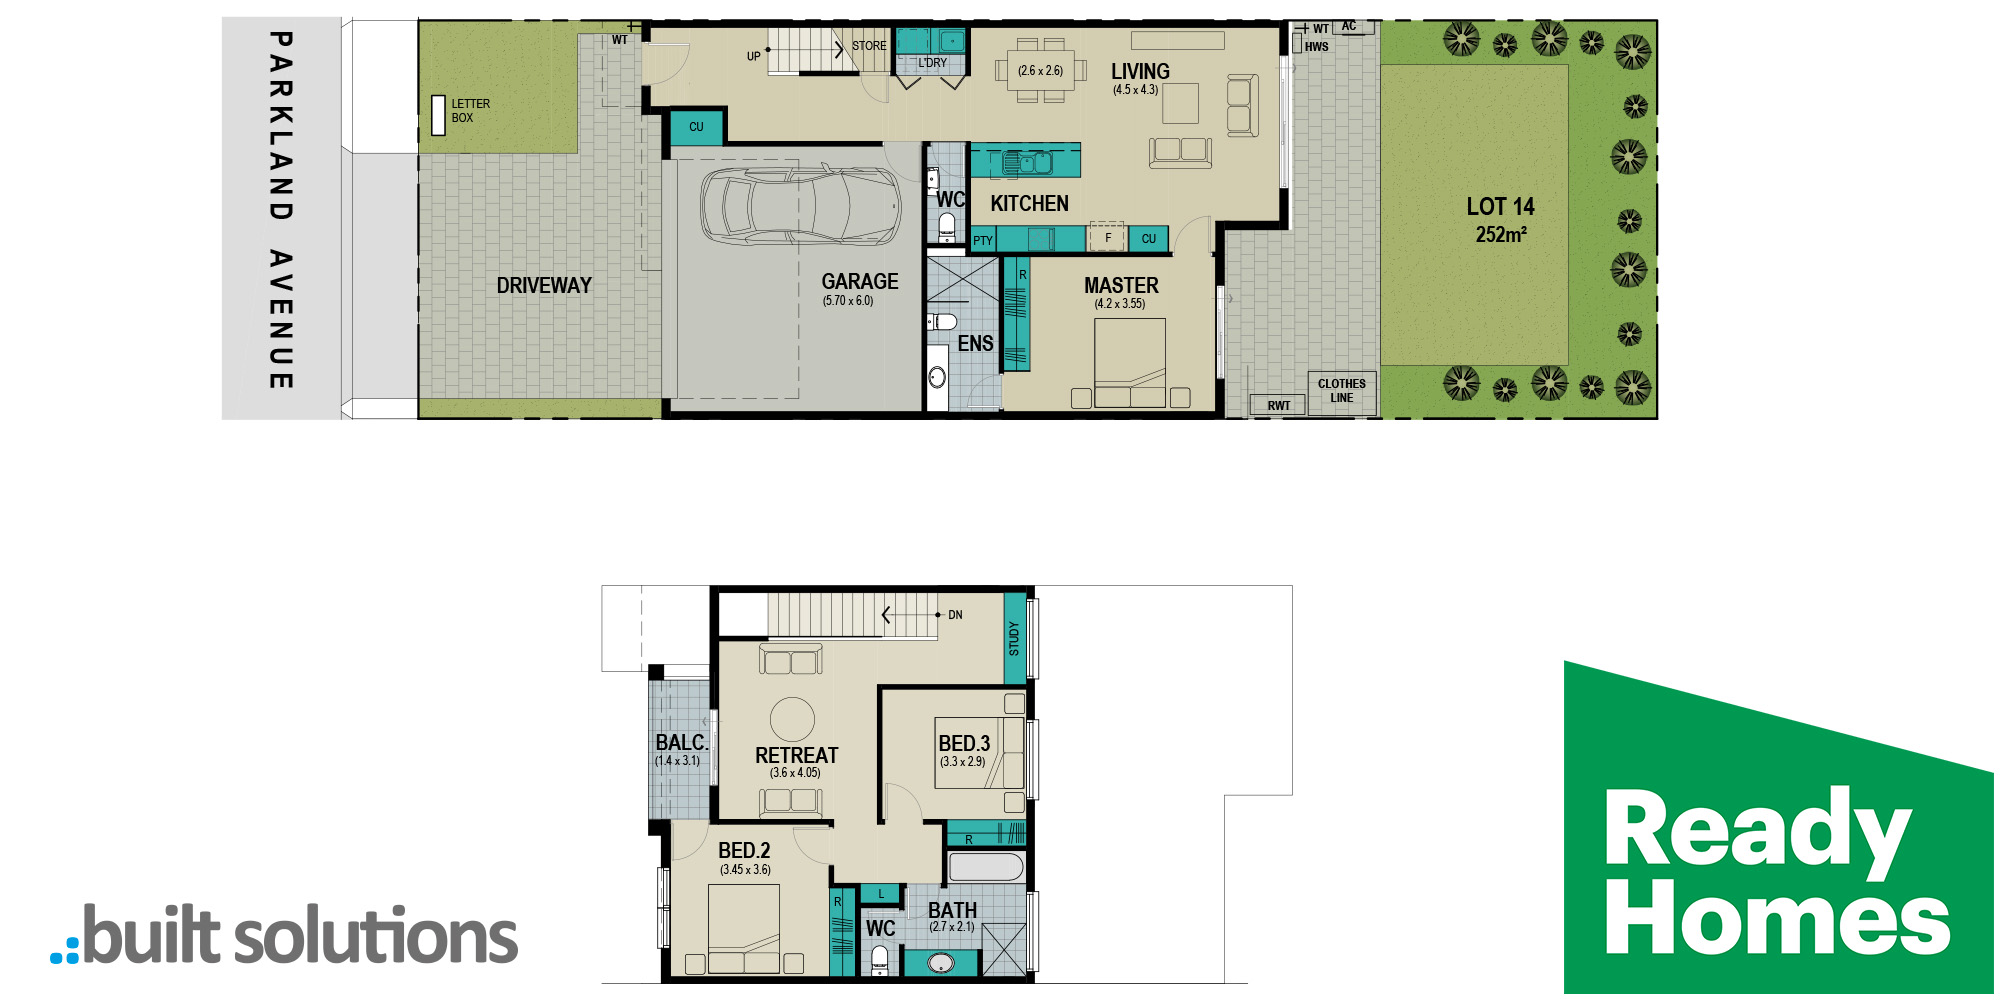 Lot 14 Parkland Avenue floorplan